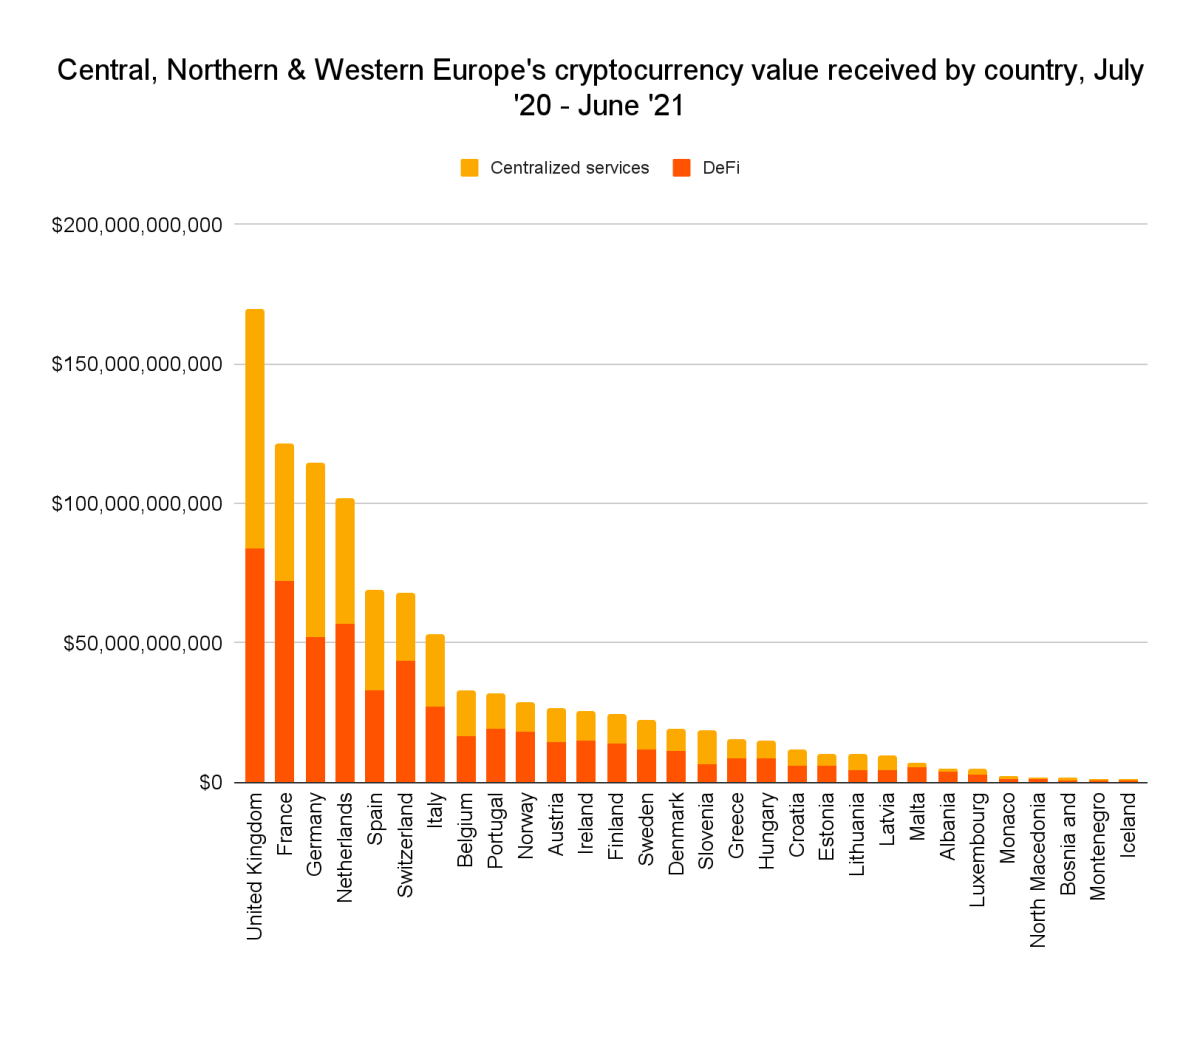 Central, Northern, and Western Europe's crypto value received by country from July 2020 to June 2021